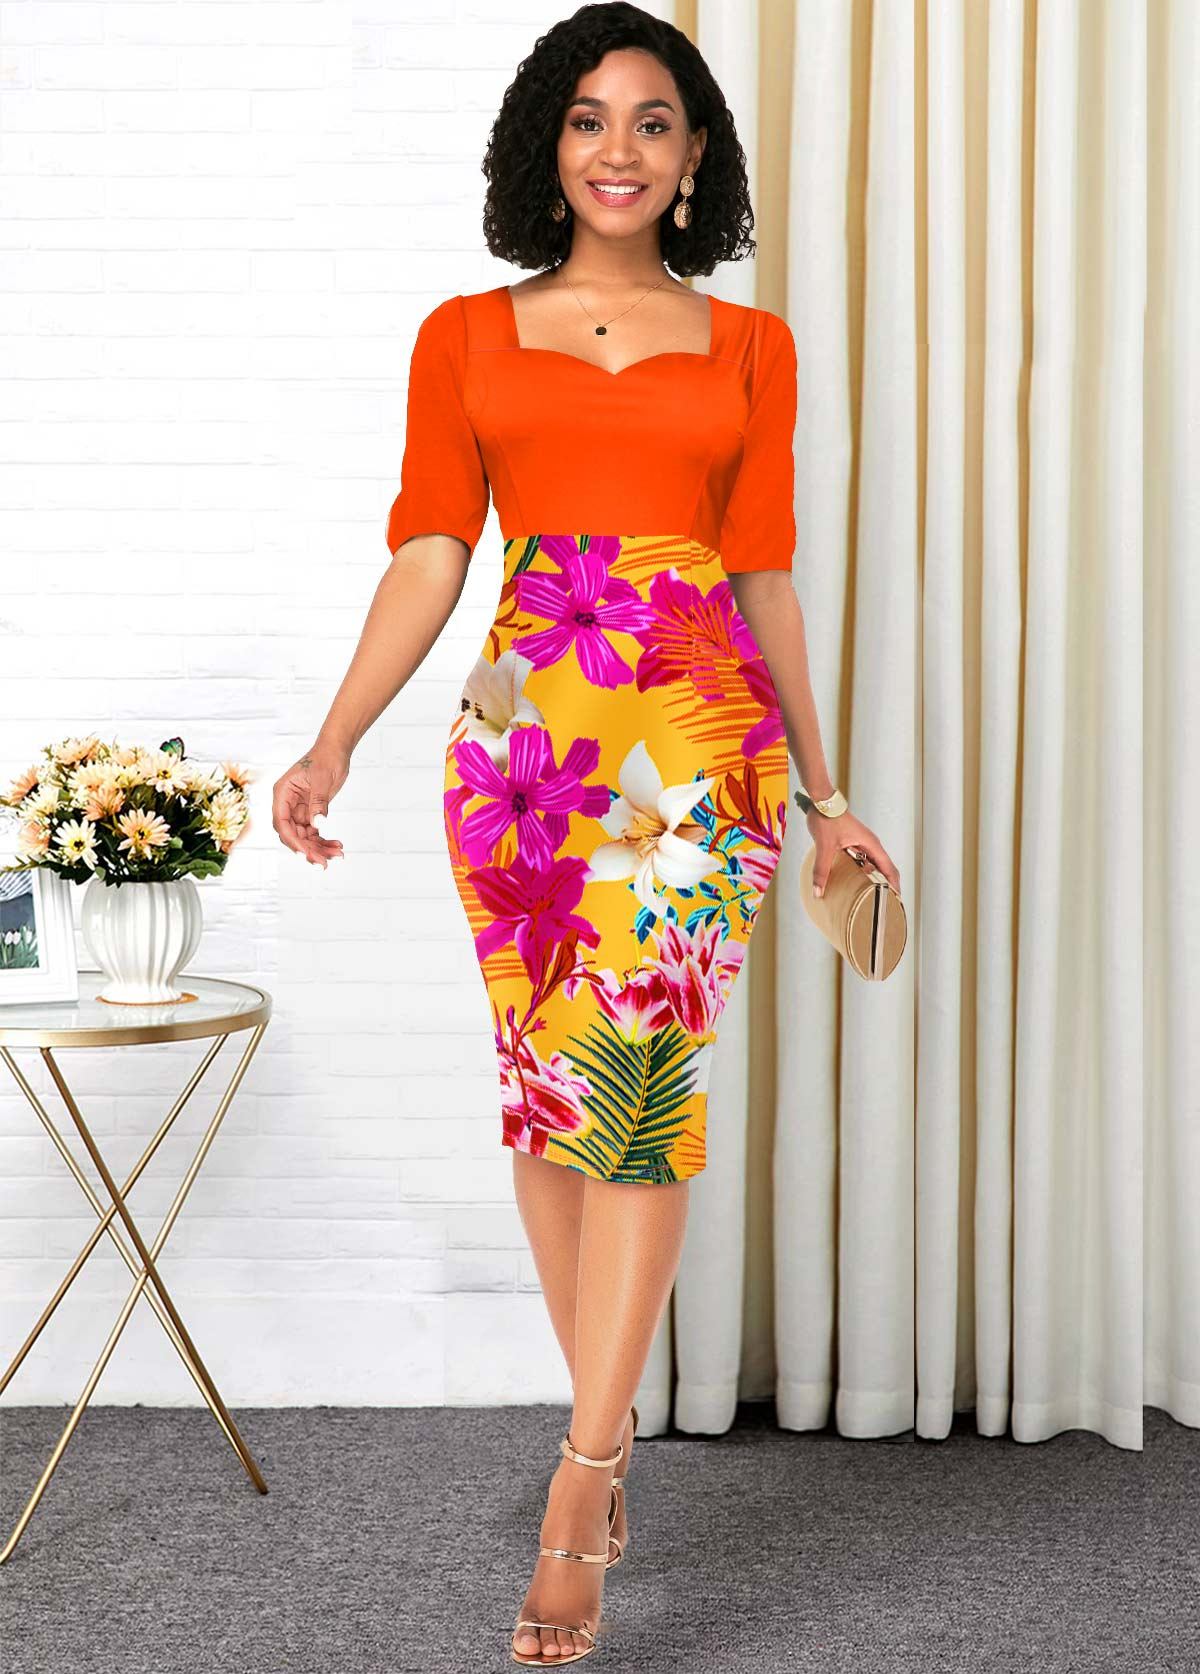 Half Sleeve Floral Print Orange Contrast Dress